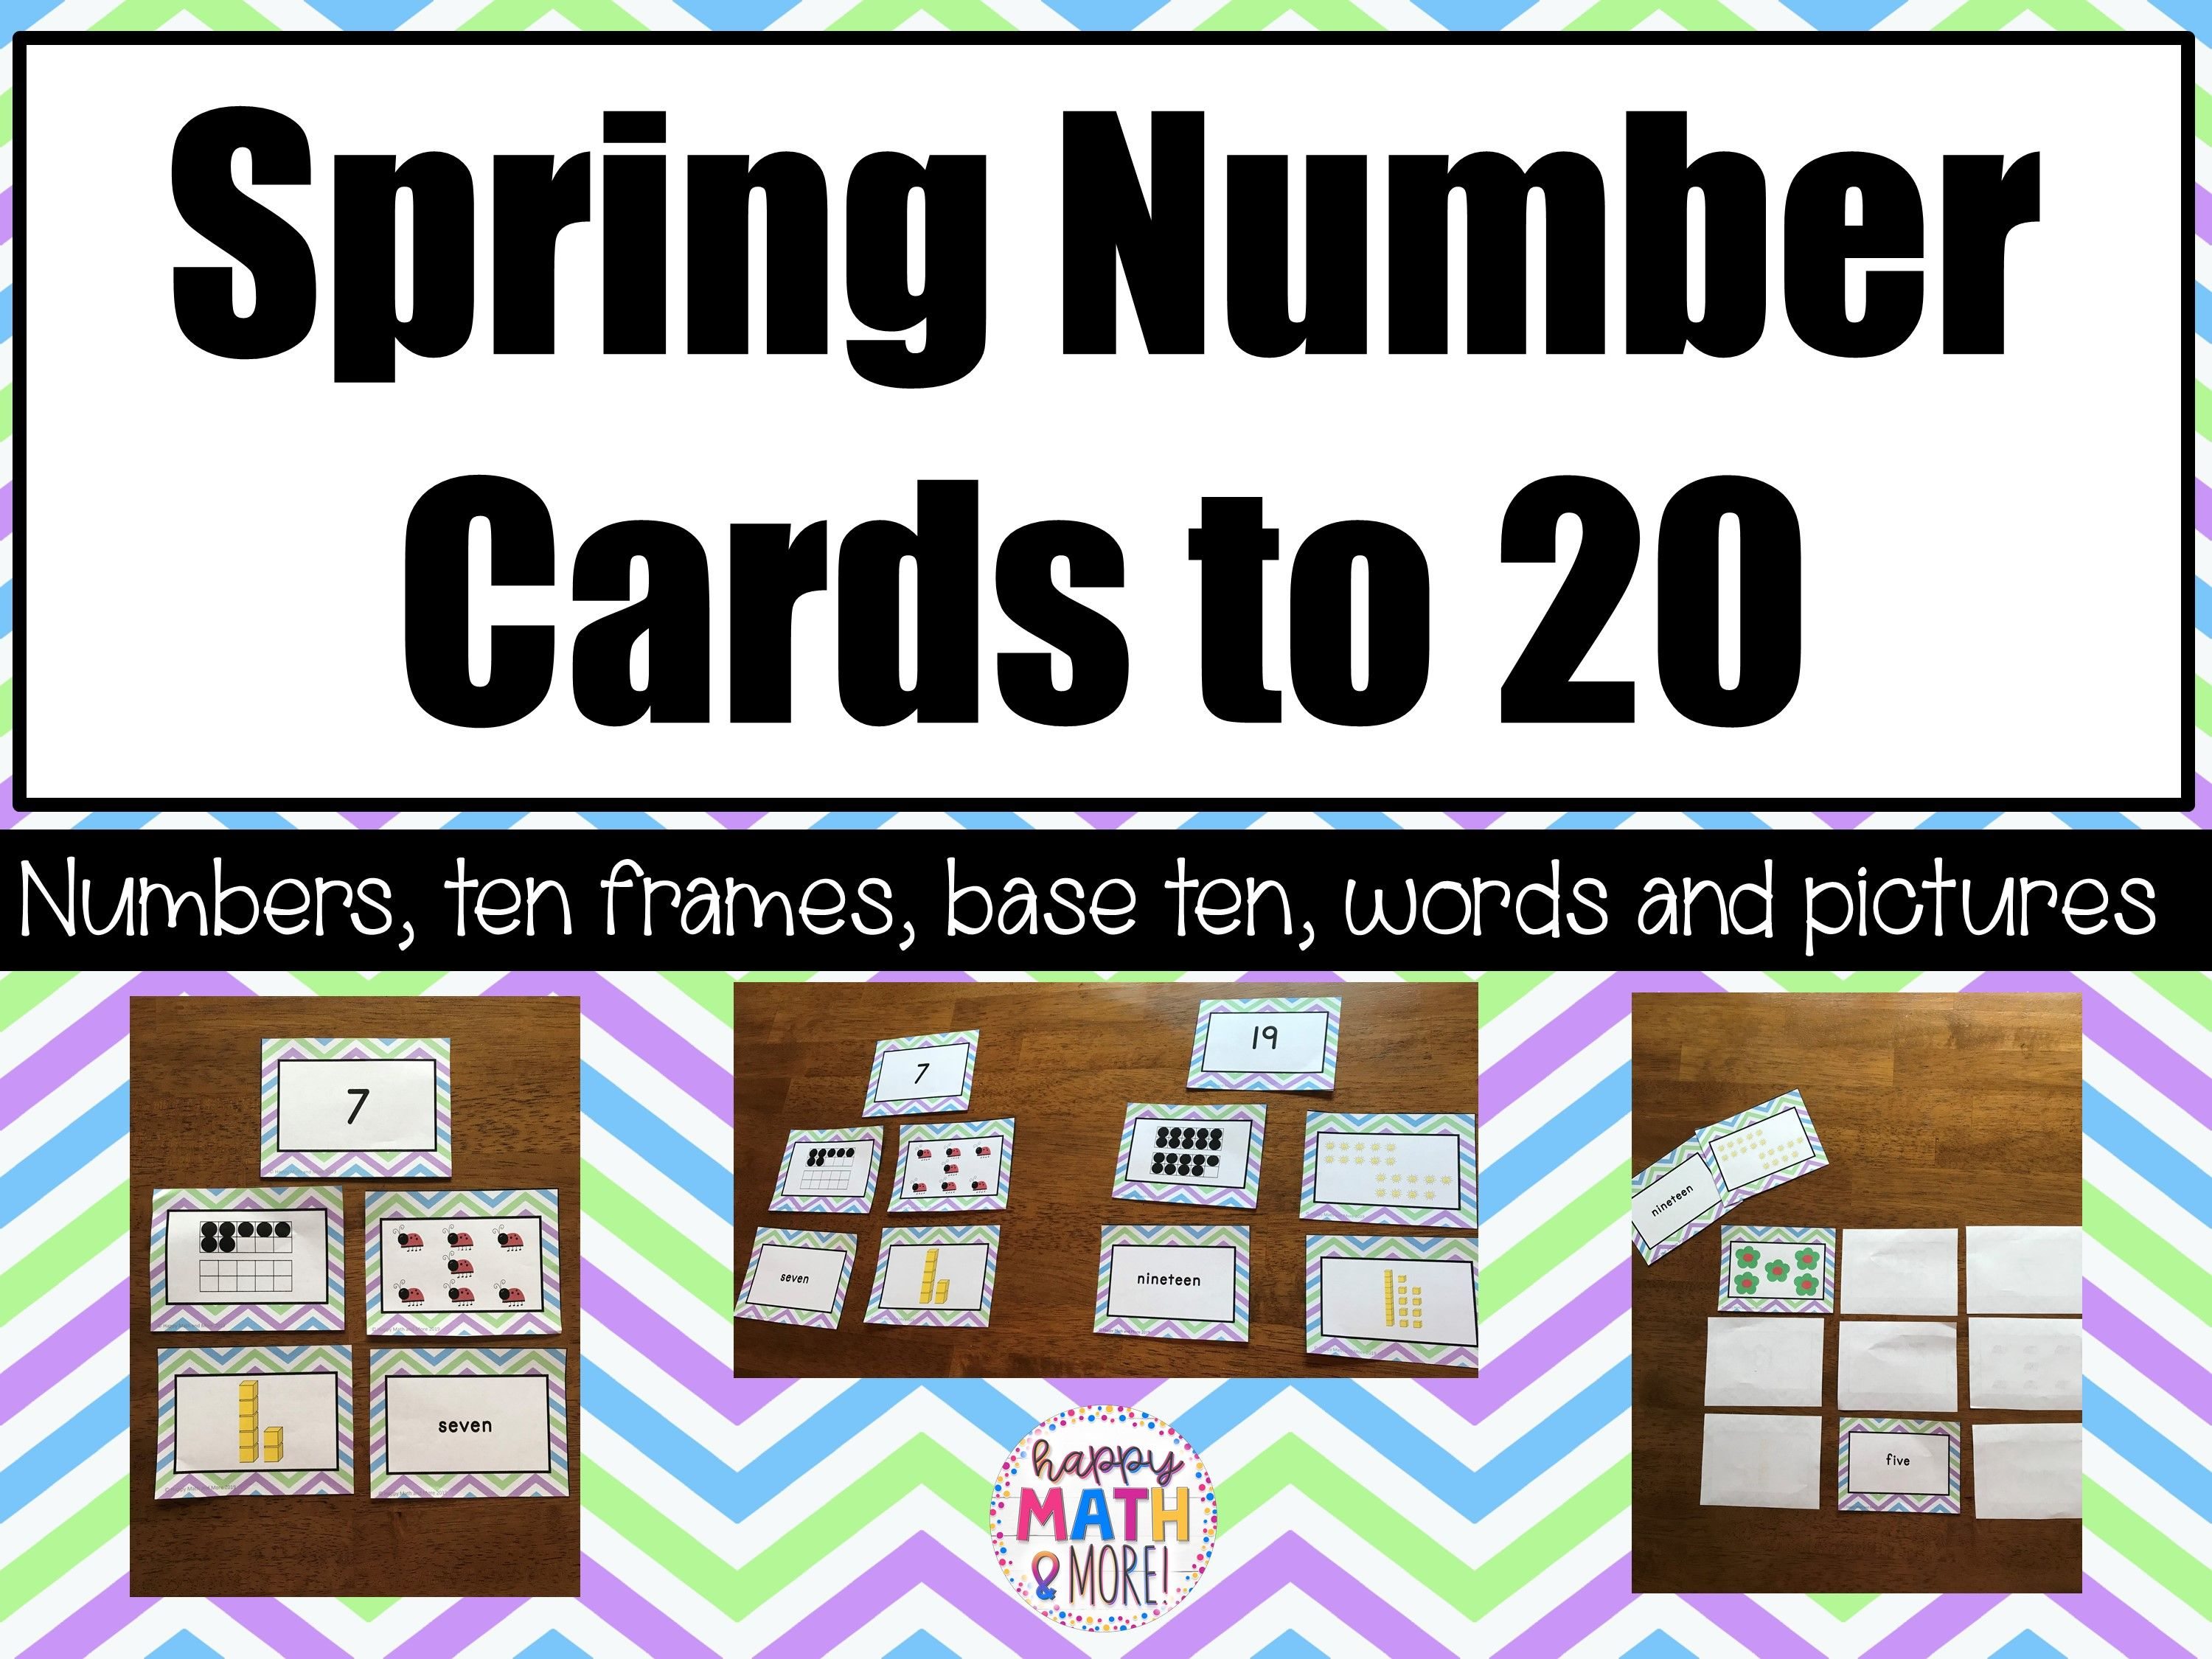 Spring Number Cards To 20